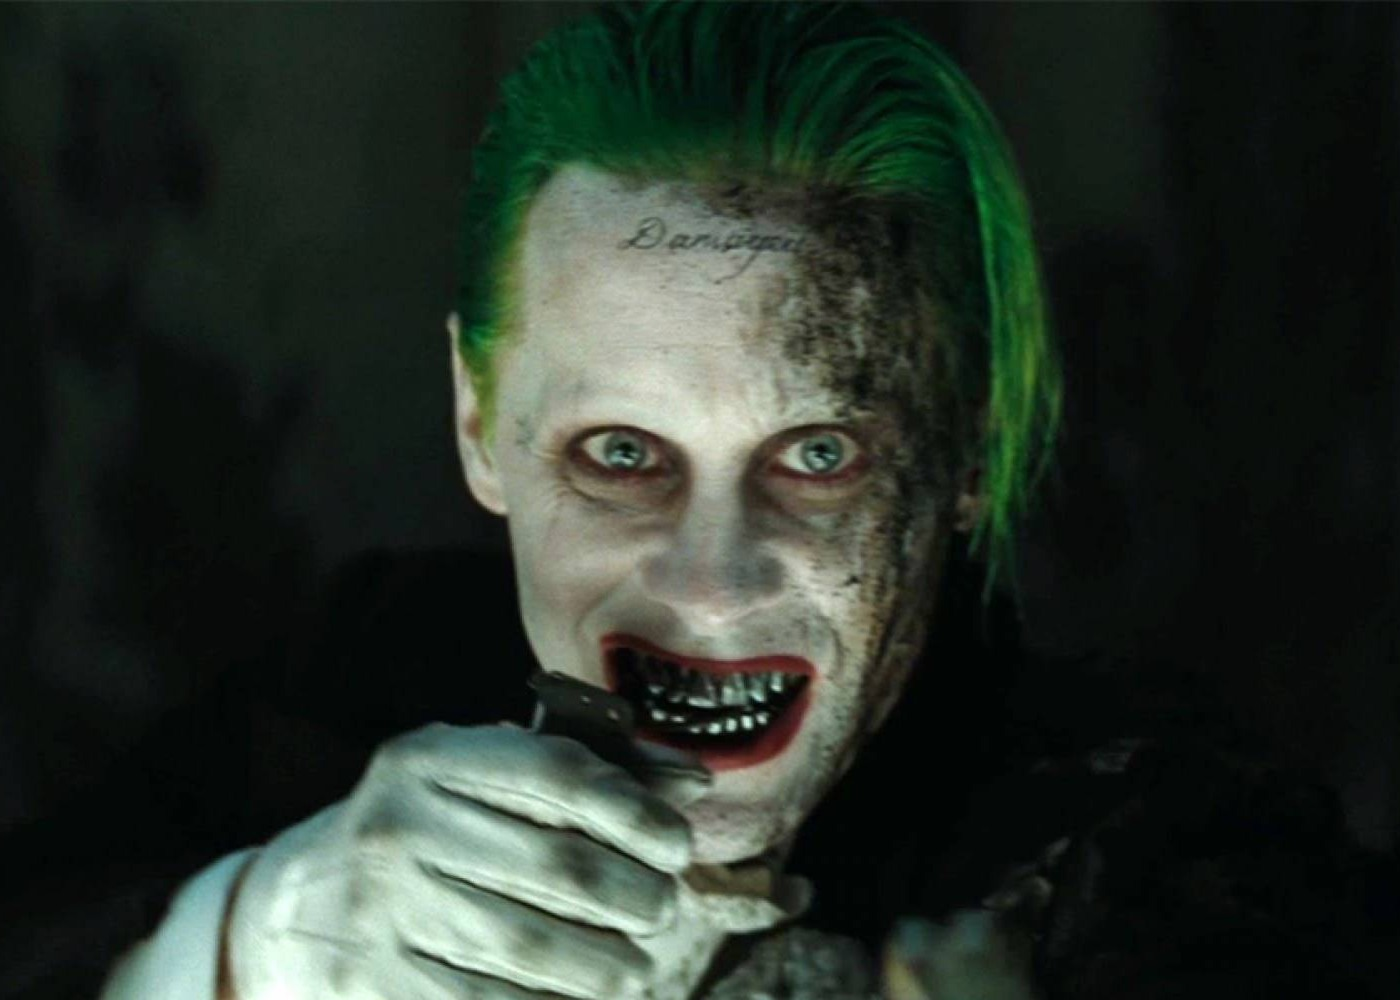 Gotham City Sirens: Jared Leto Won't Confirm or Deny Joker's Involvement